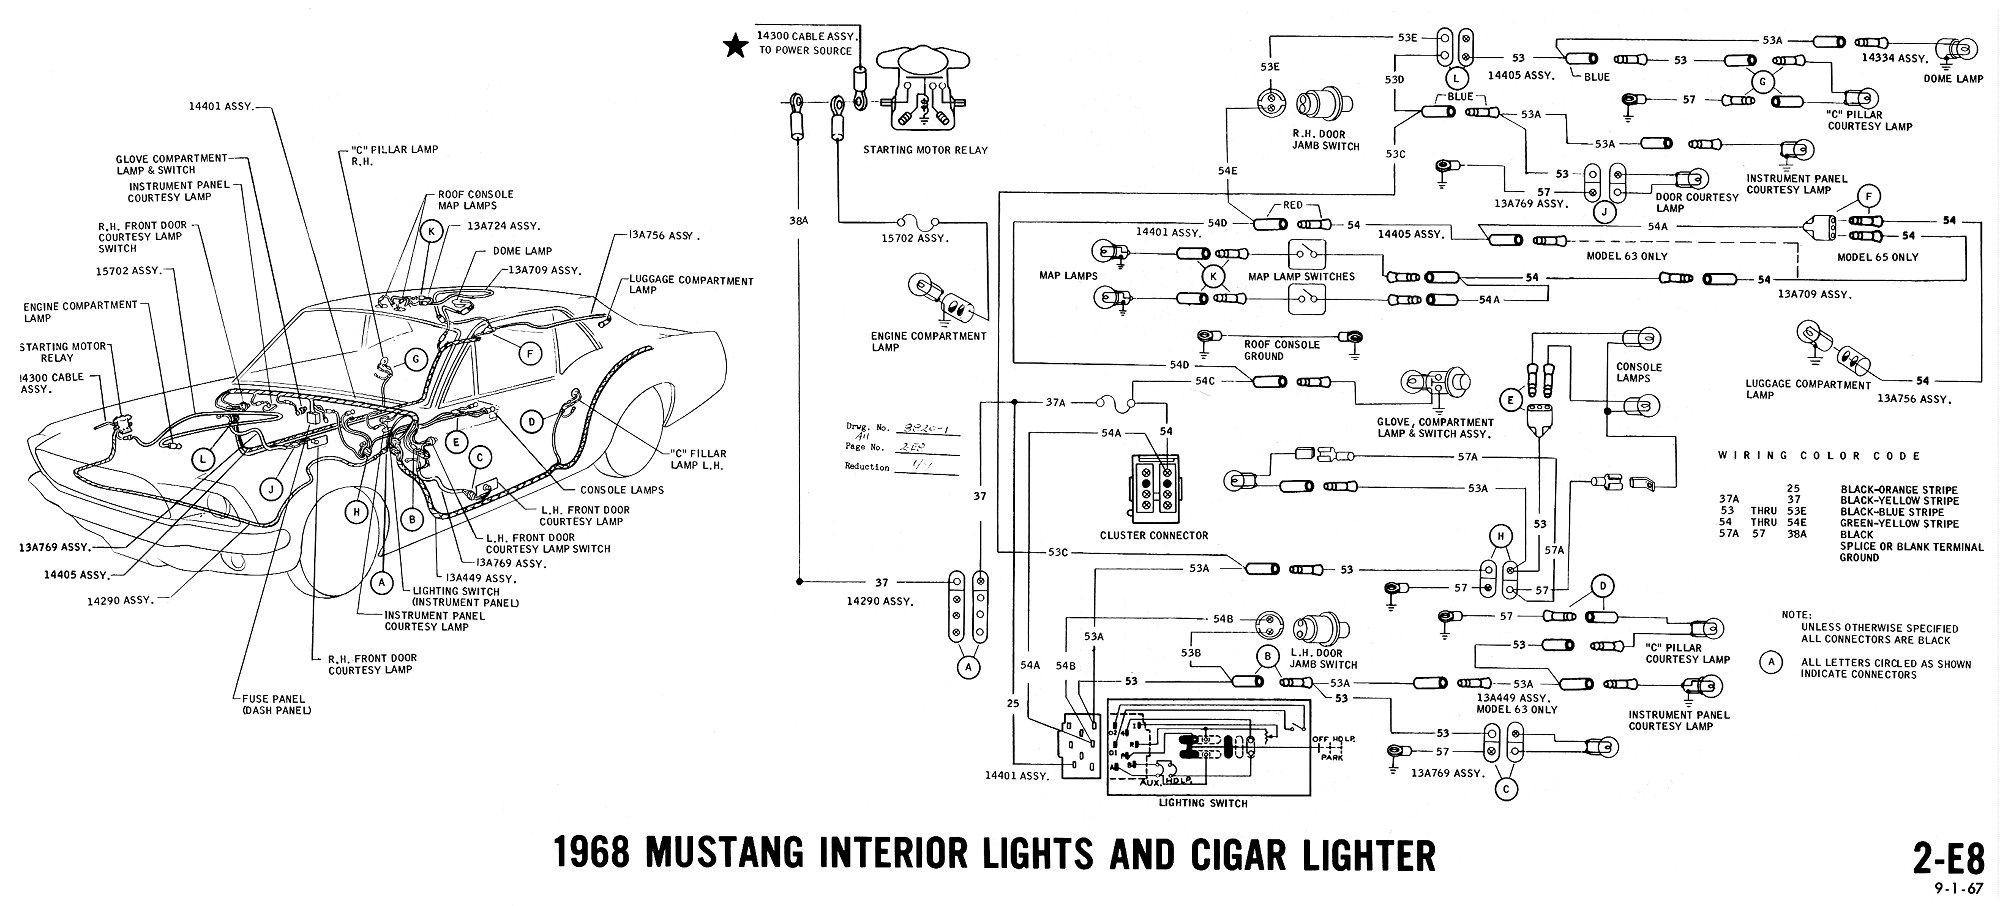 E8 wiring diagrams for 1965 mustang lighting readingrat net 1965 mustang turn signal wiring diagram at bakdesigns.co